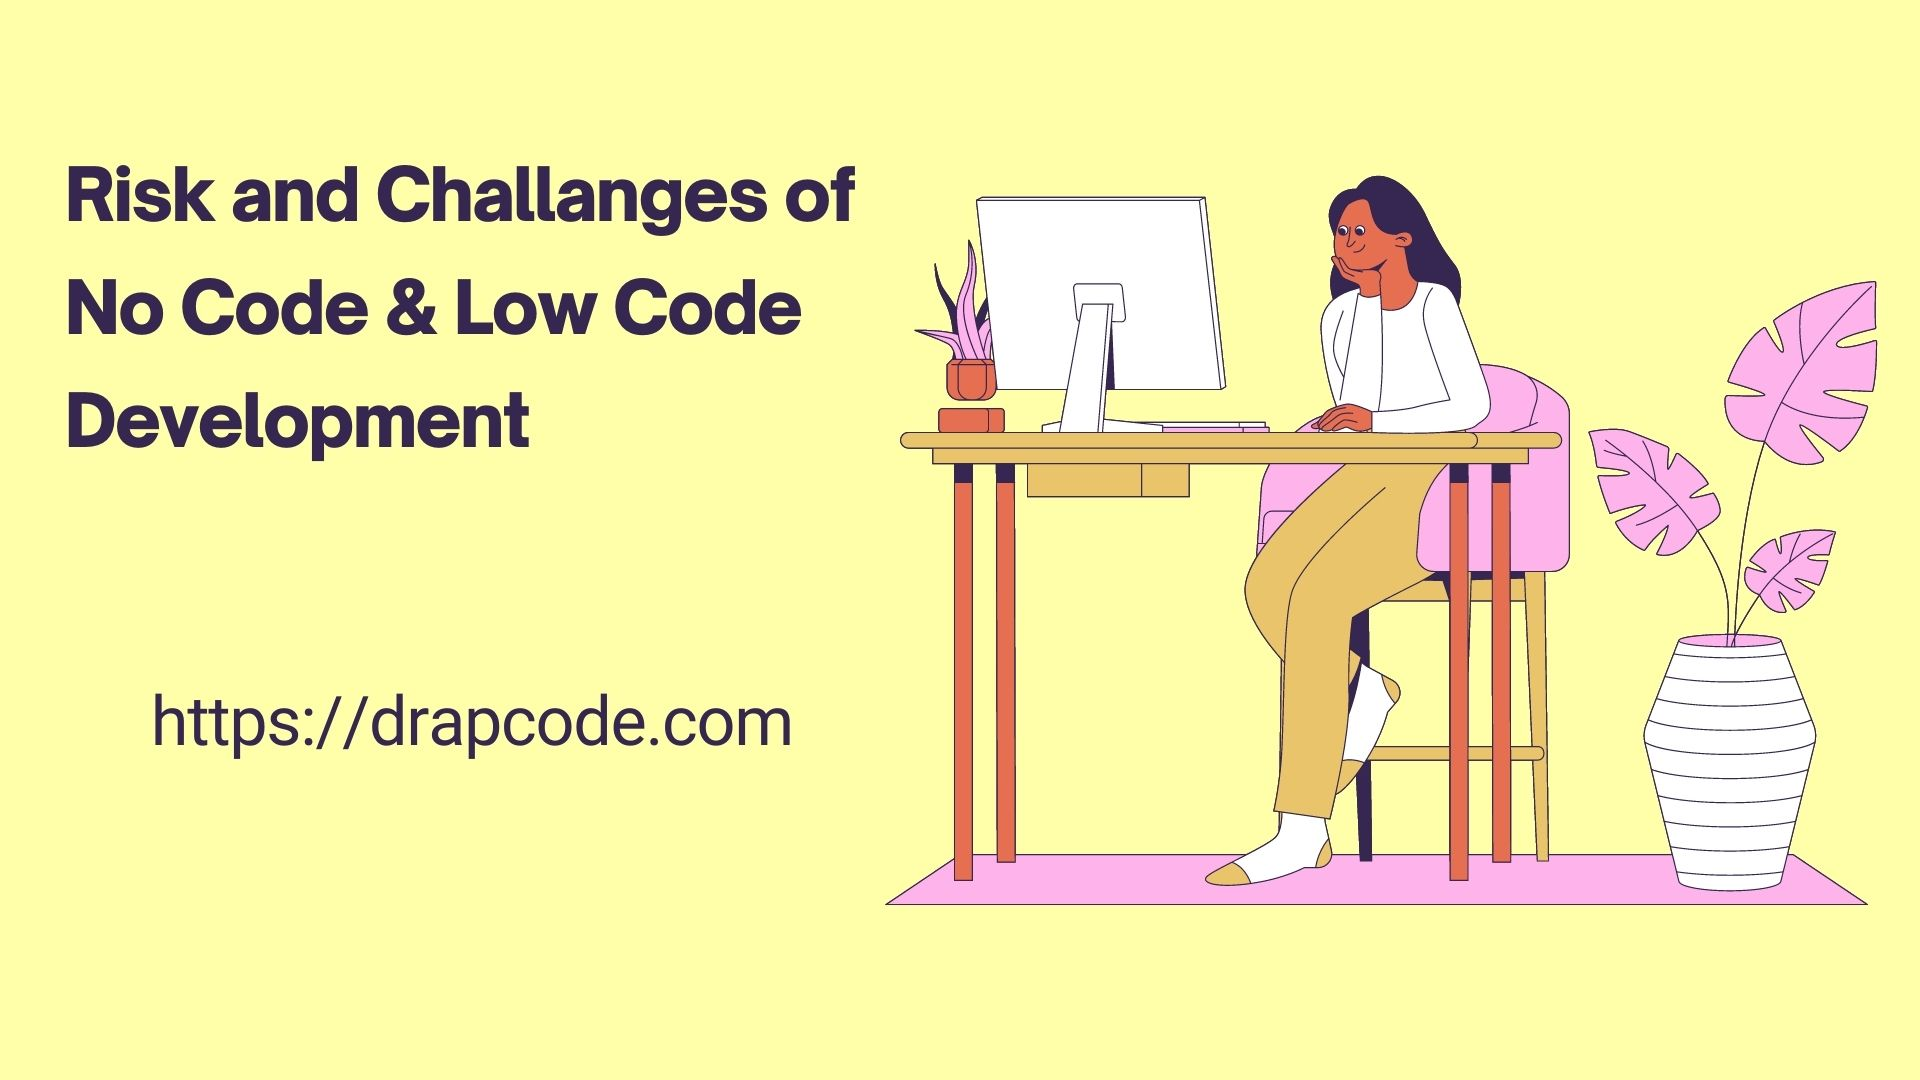 Risk and Challenges of No Code & Low Code Development